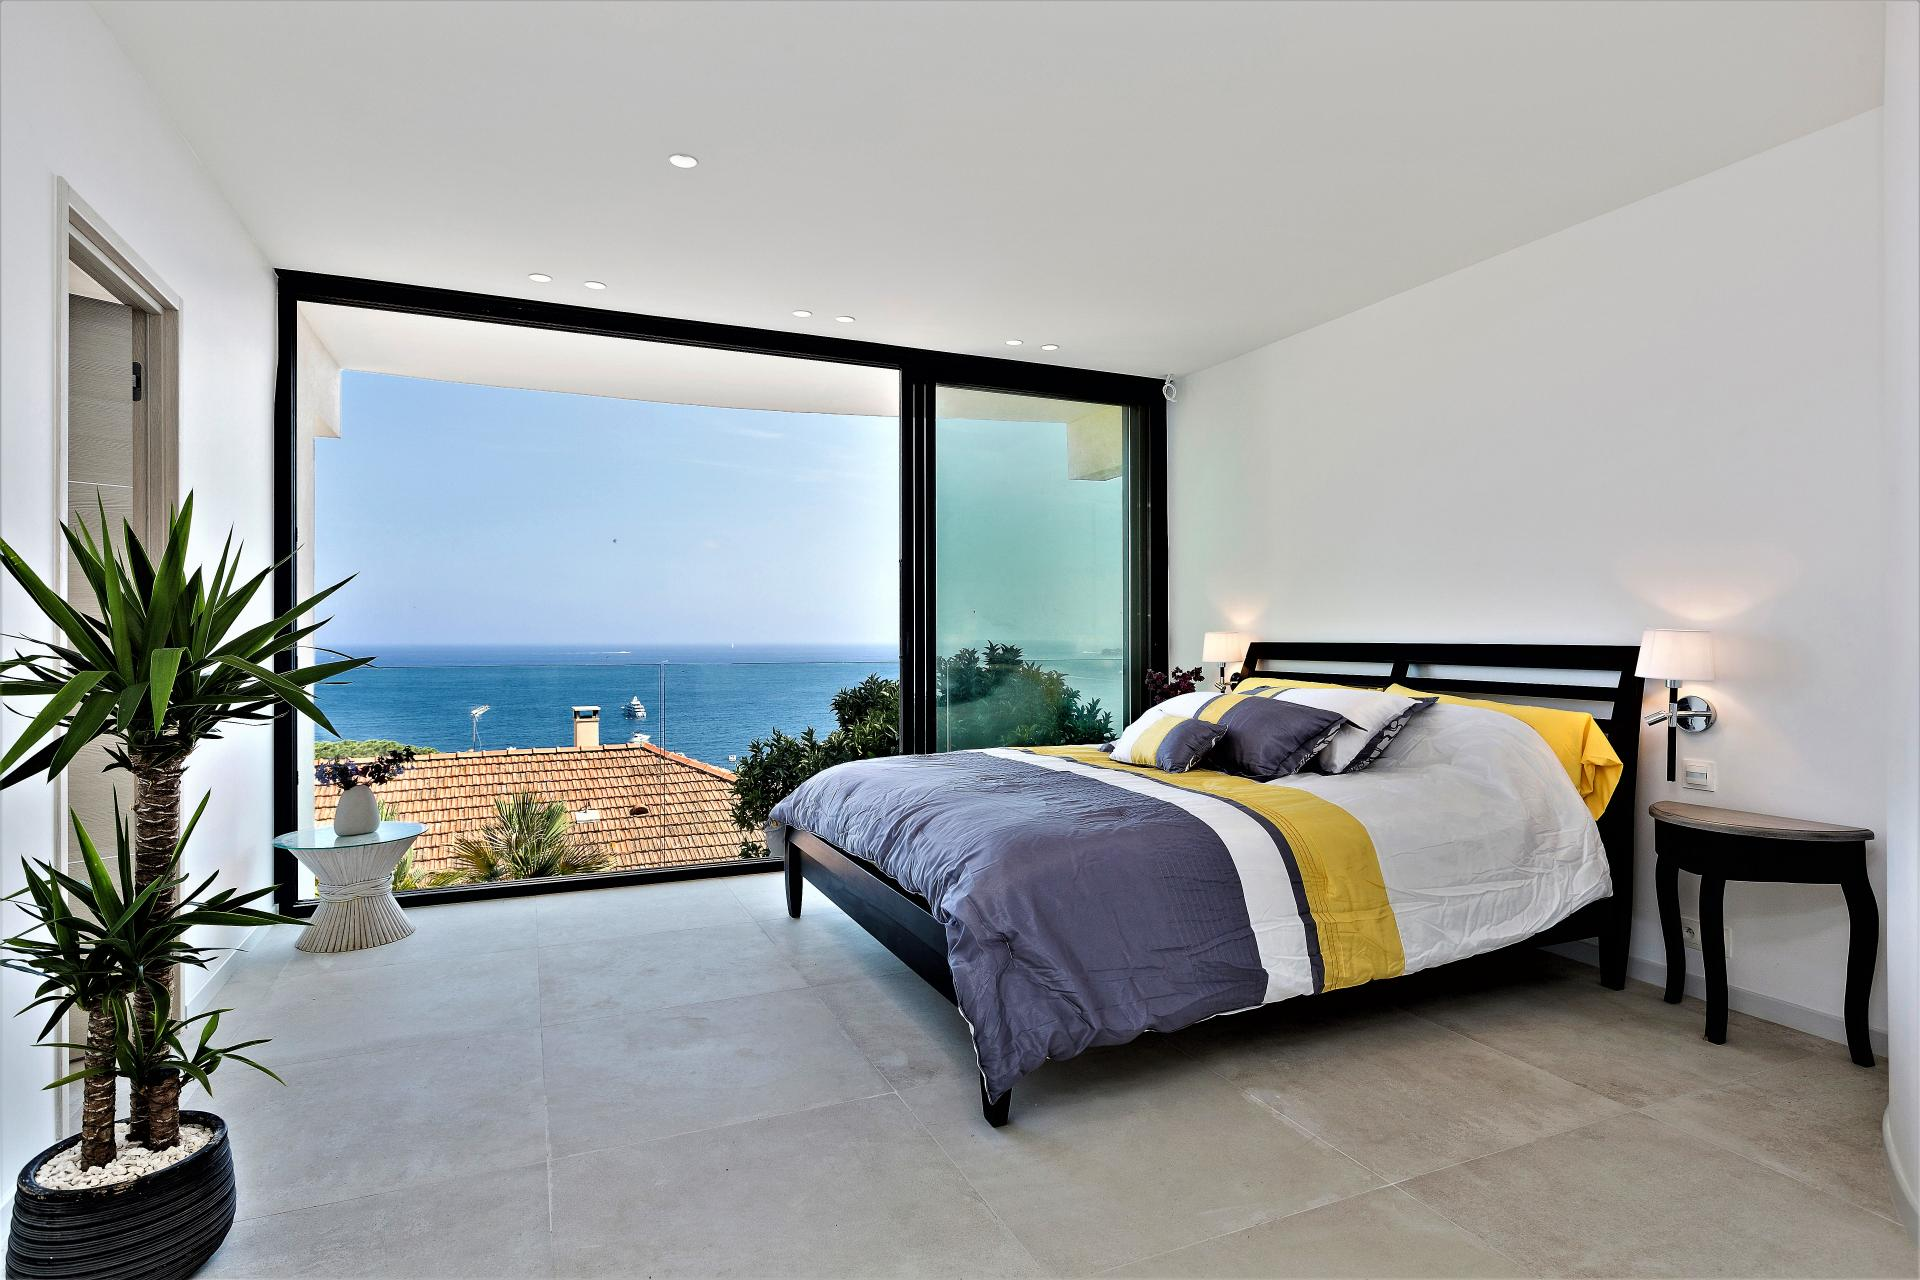 VILLA INFINITY AND ONE OF ITS NICE BEDROOM FOR A GREAT HOLIDAY IN EZE COTE D'AZUR